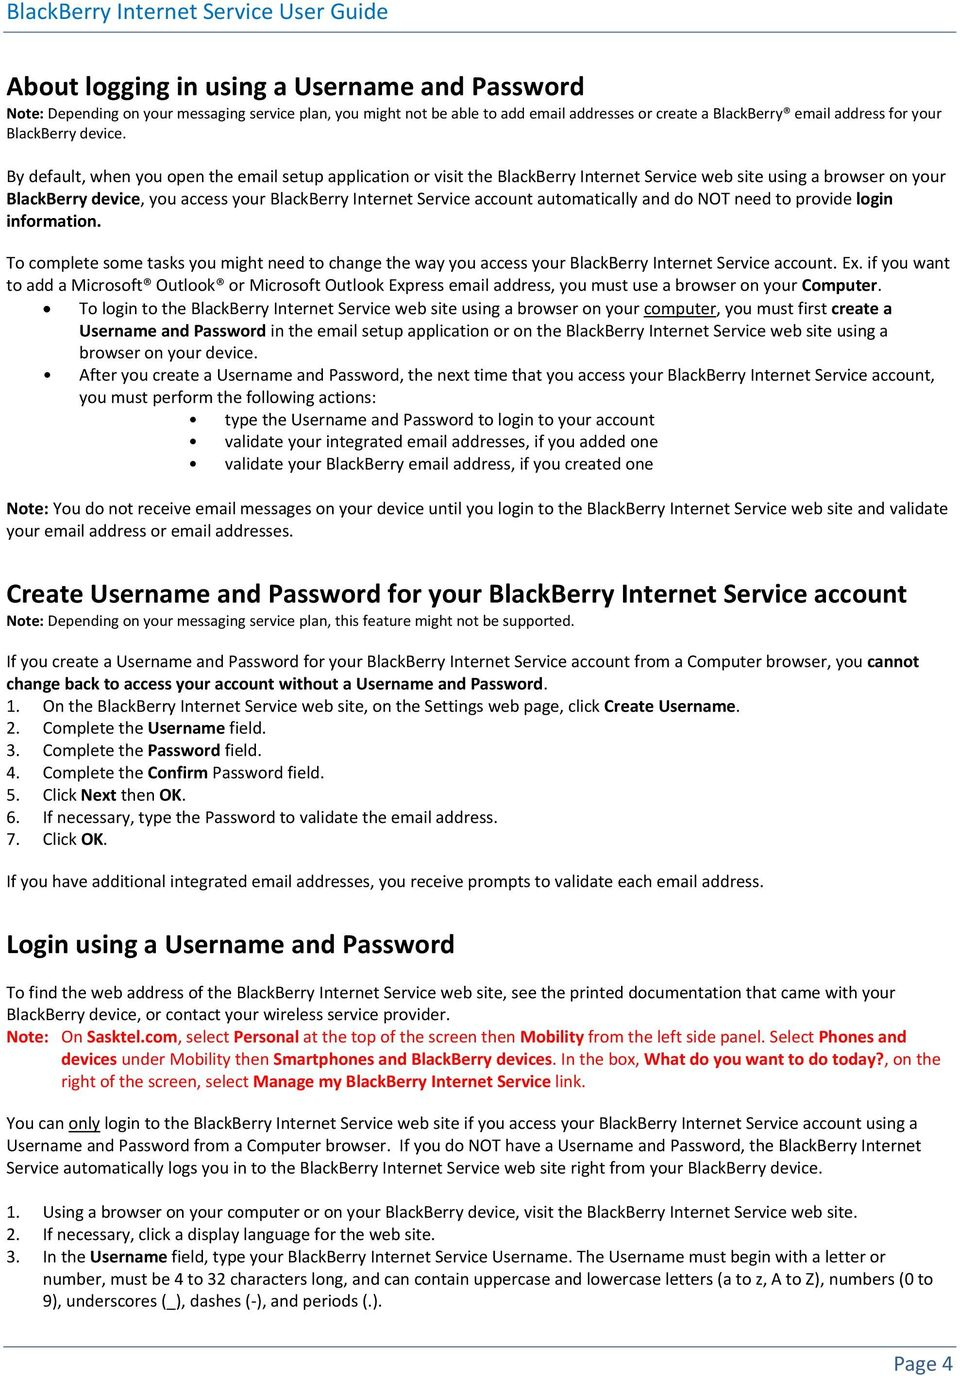 BlackBerry Internet Service Using the Browser on Your BlackBerry